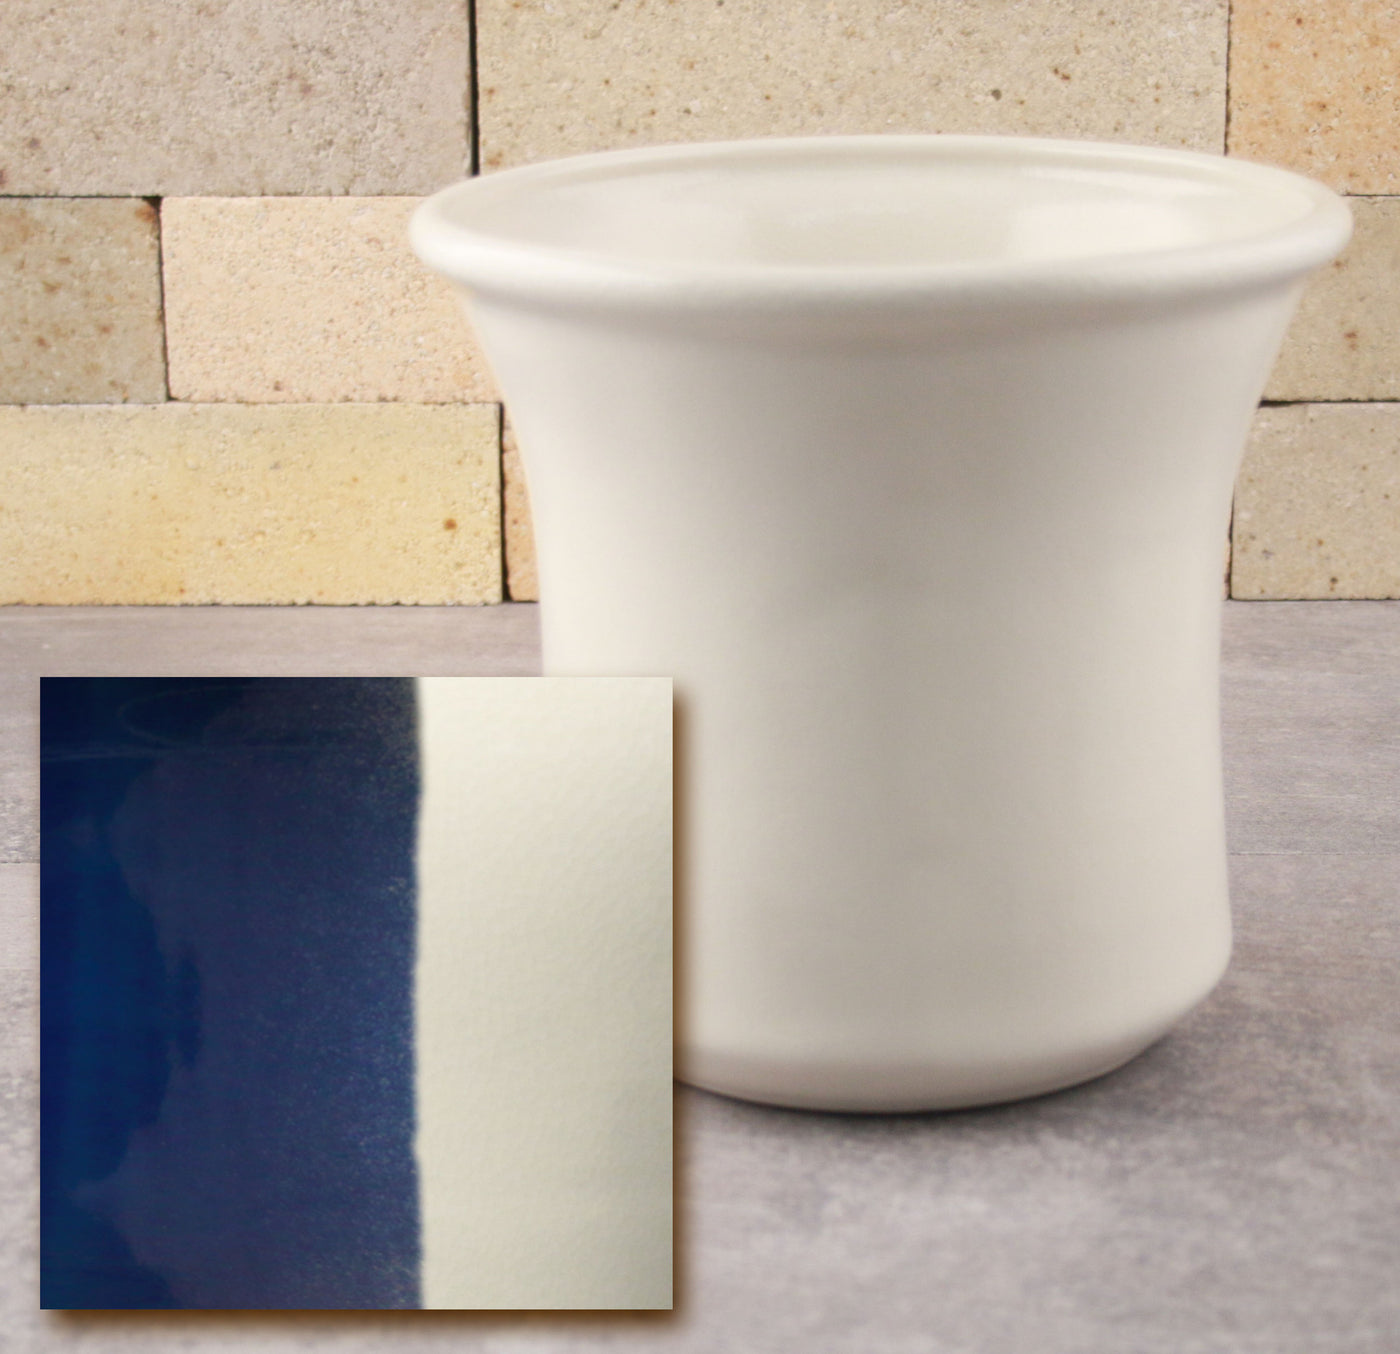 Utensil Holder - Cobalt Blue and White